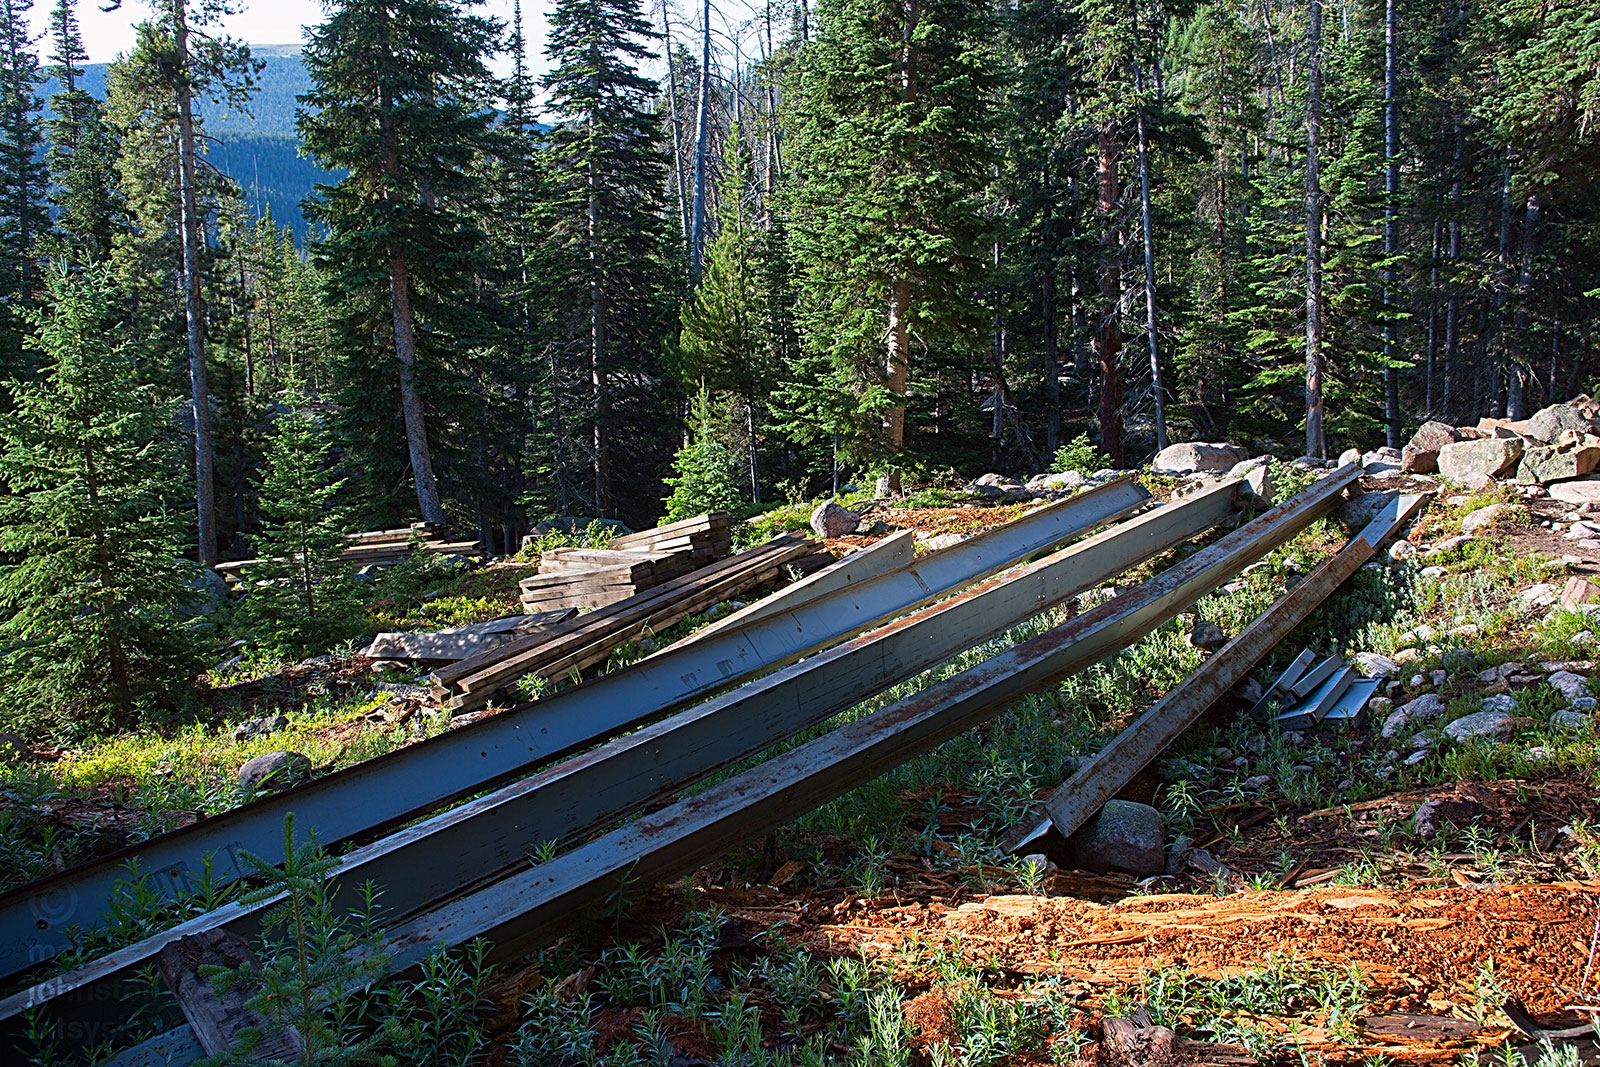 New i-beams and decking planks positioned for a rebuild of the bridge to cross Ouzel Creek.